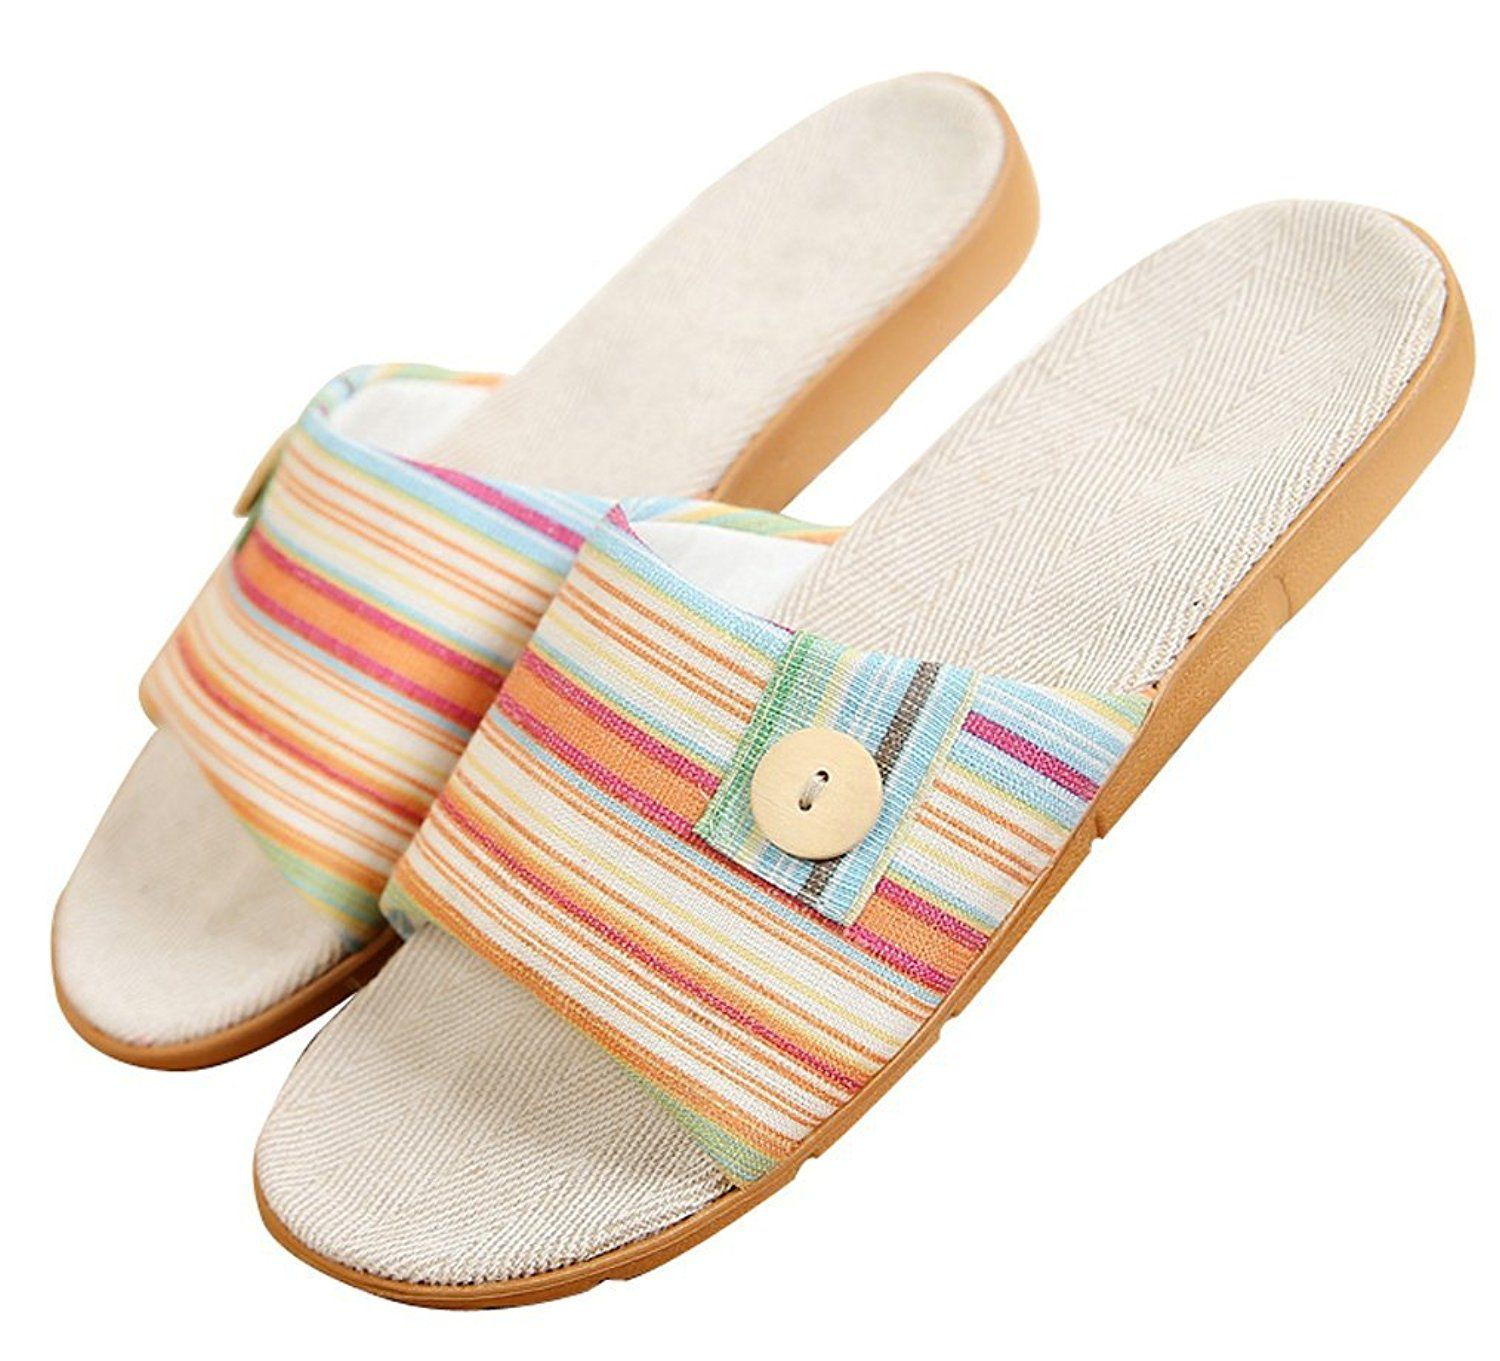 Blubi Women s Summer Button Flax House Slippers Comfortable Ladies Slippers  Open Toe Slippers    Click. Blubi Women s Summer Button Flax House Slippers Comfortable Ladies